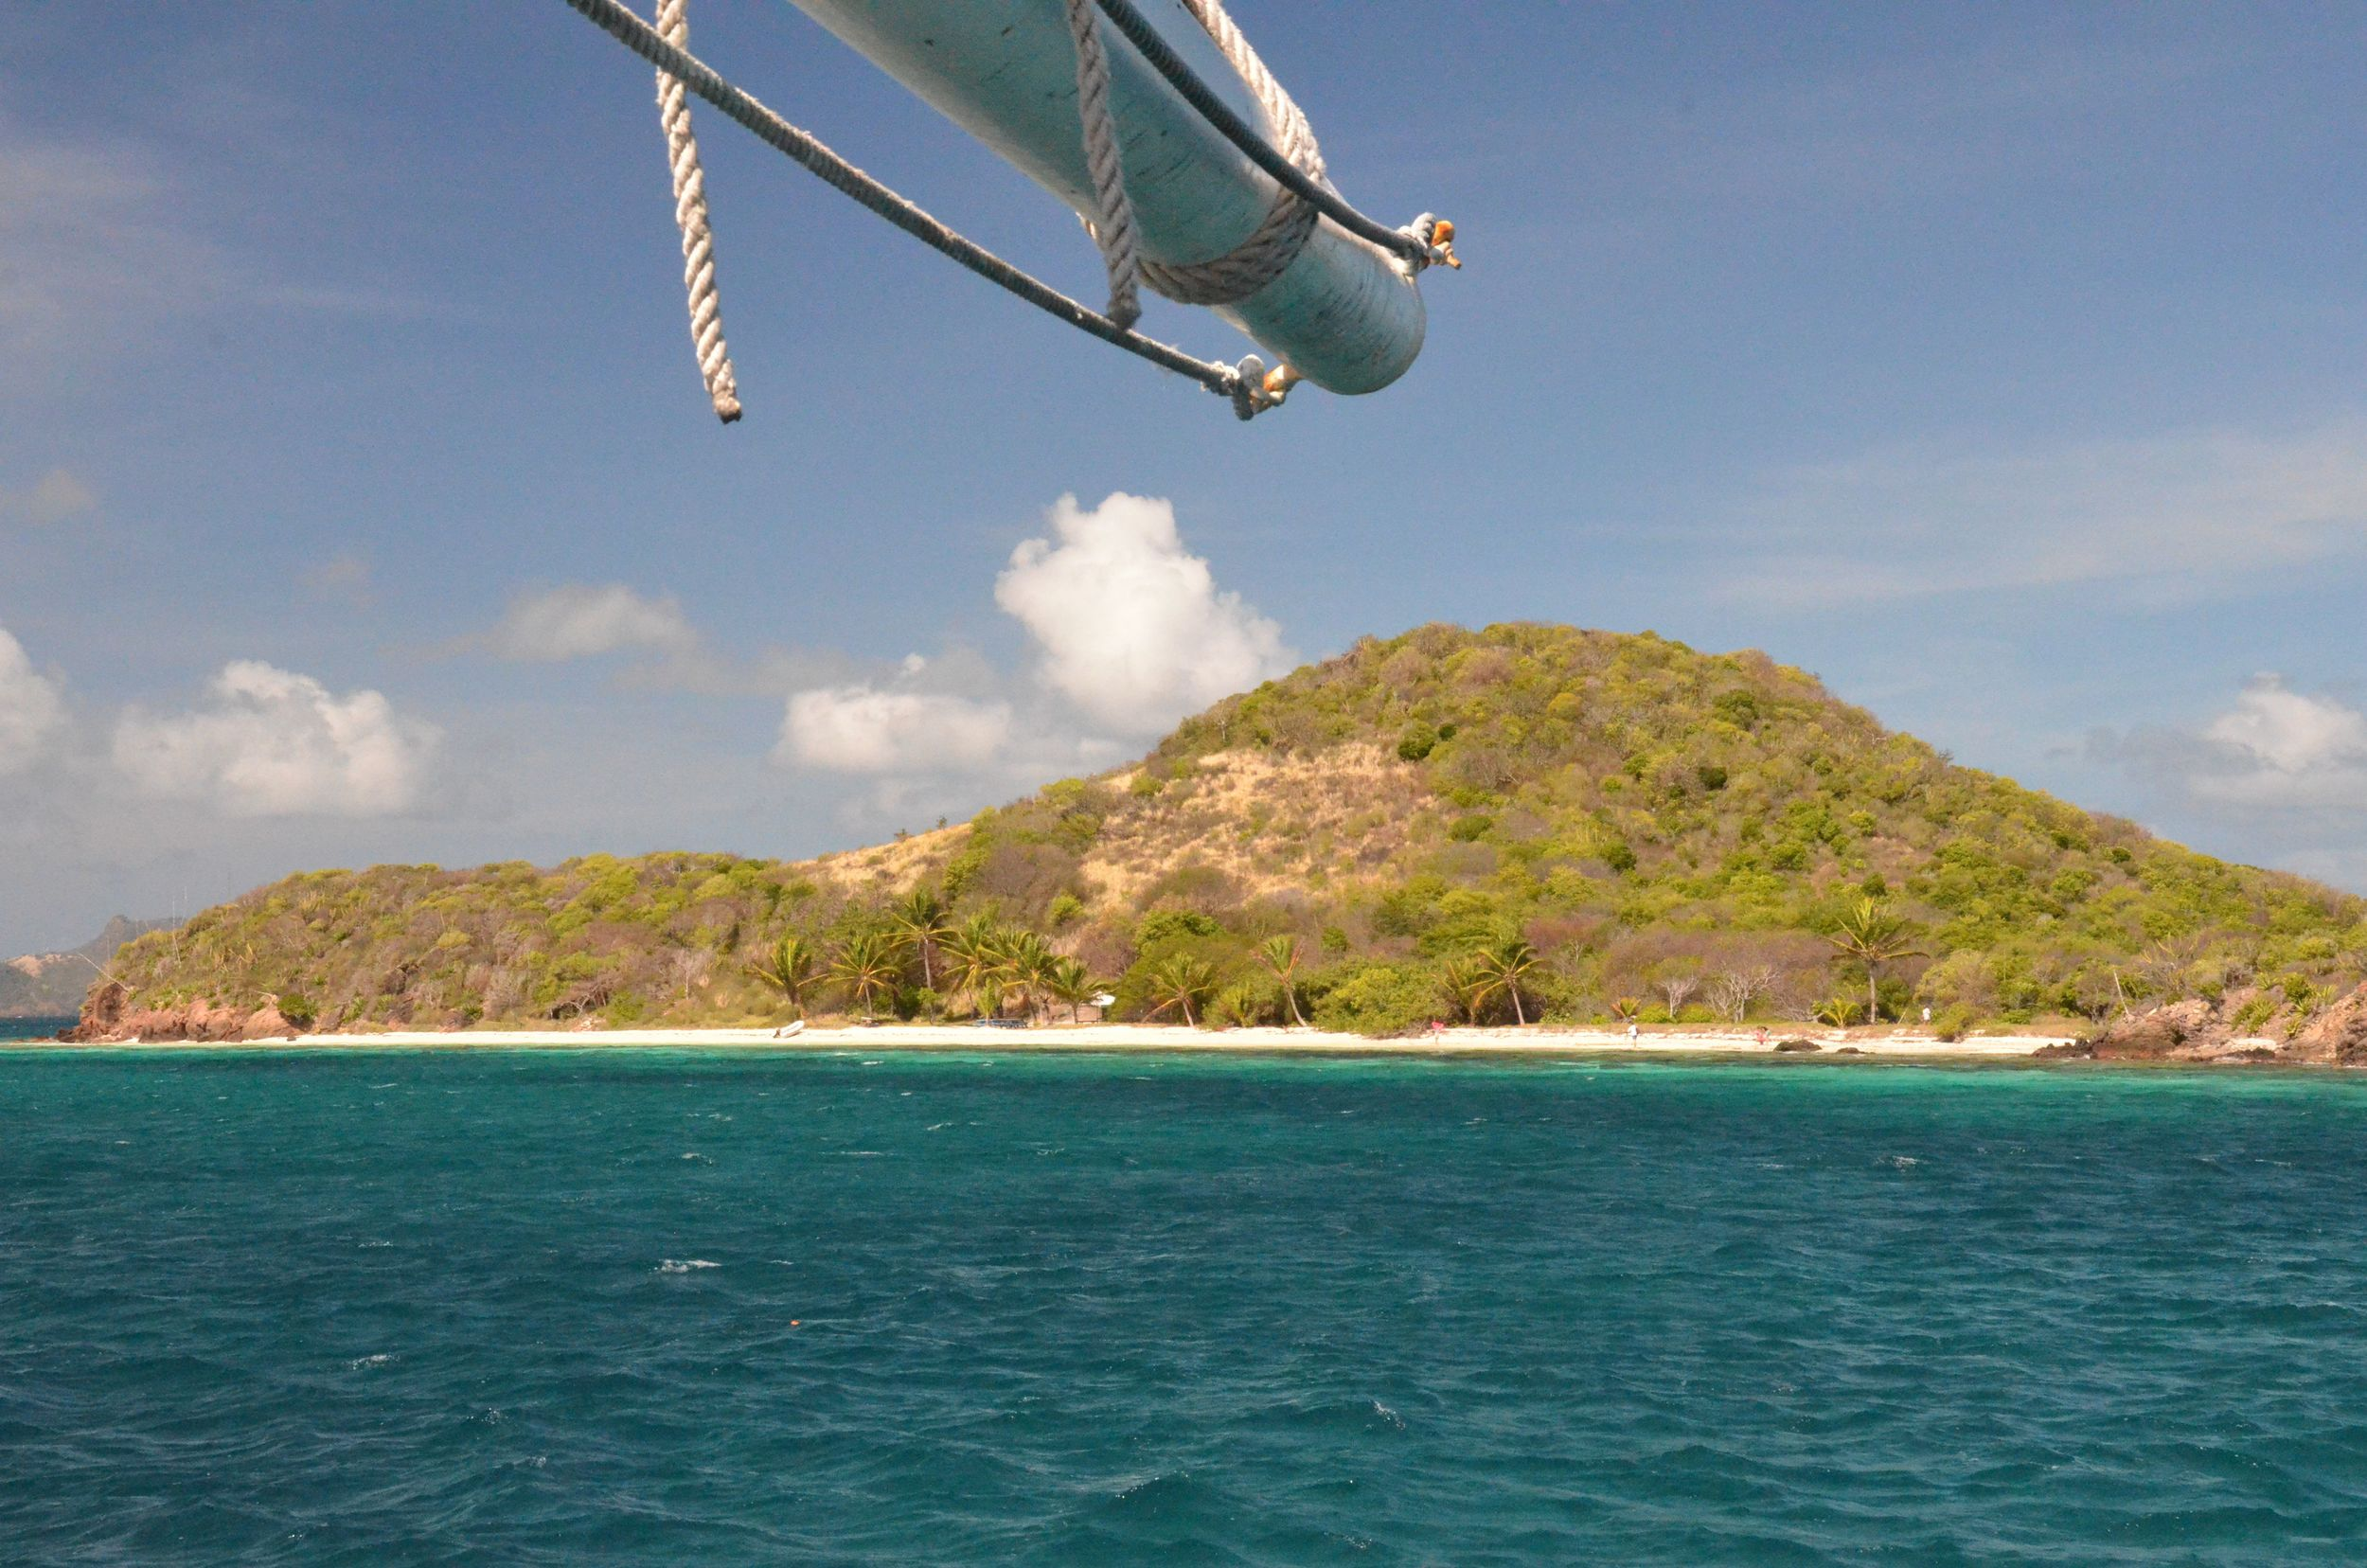 Approaching Tobago Cays